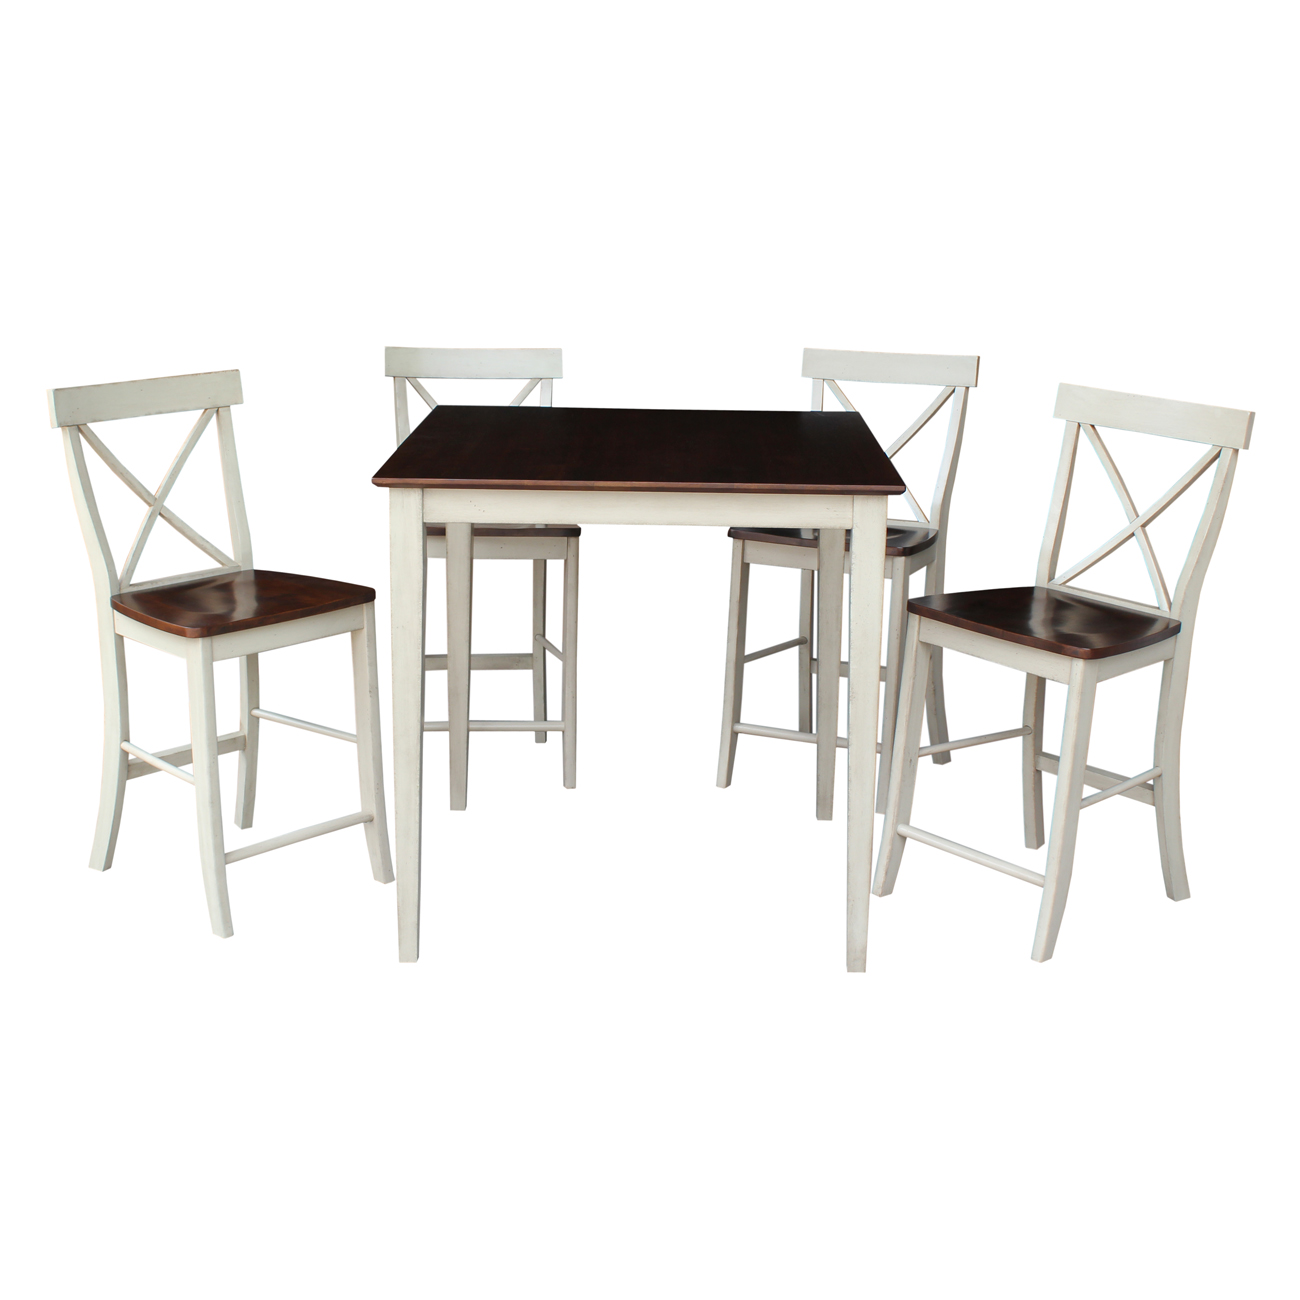 """36"""" Square Counter Height Table with 4 X-back Stools in Antiqued Almond/Espresso - 5 Piece Set"""